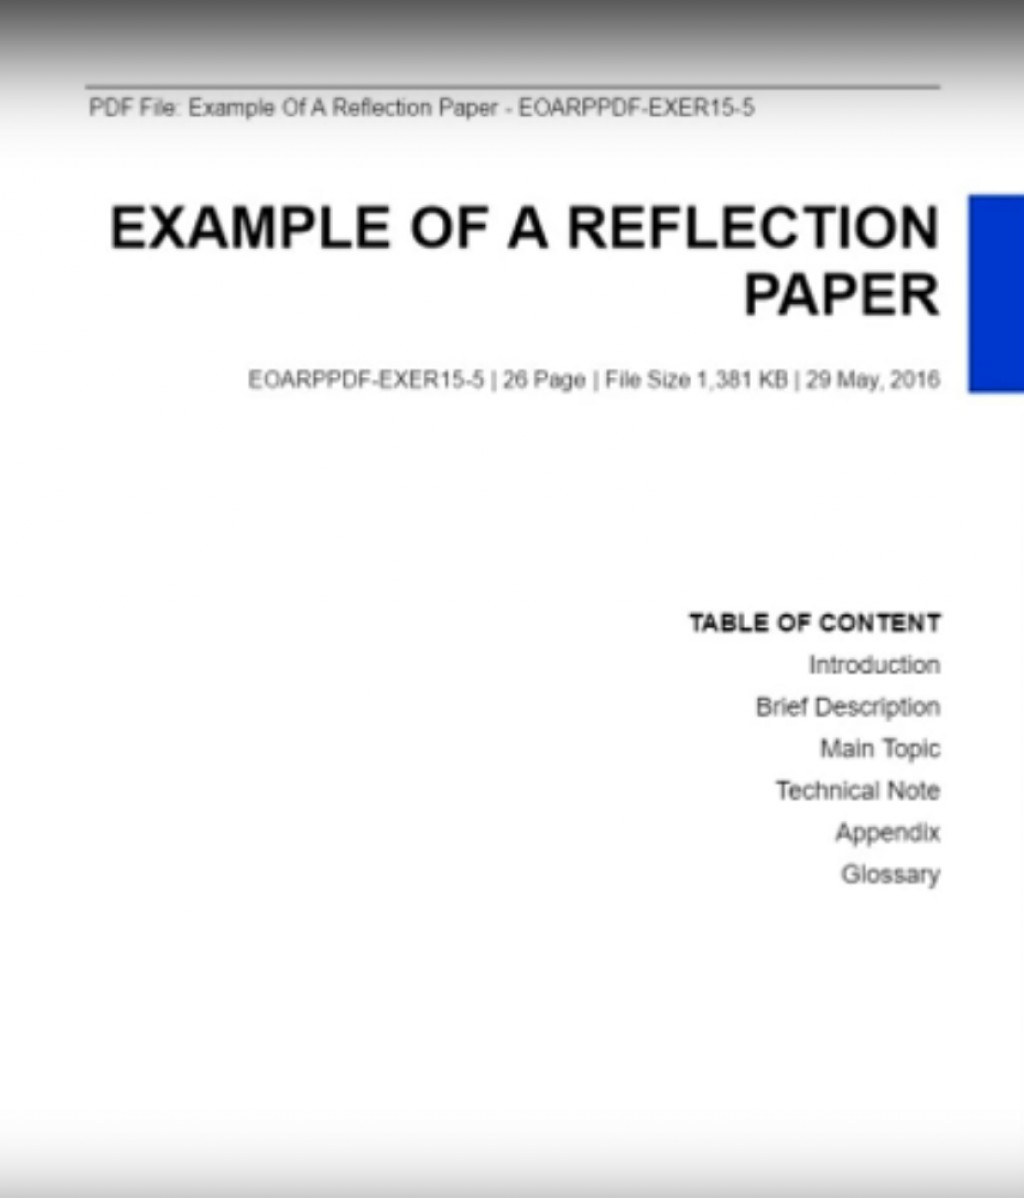 013 Reflective Essay Example Reflection Paper Unforgettable Examples About Life Pdf High School Students Apa Large